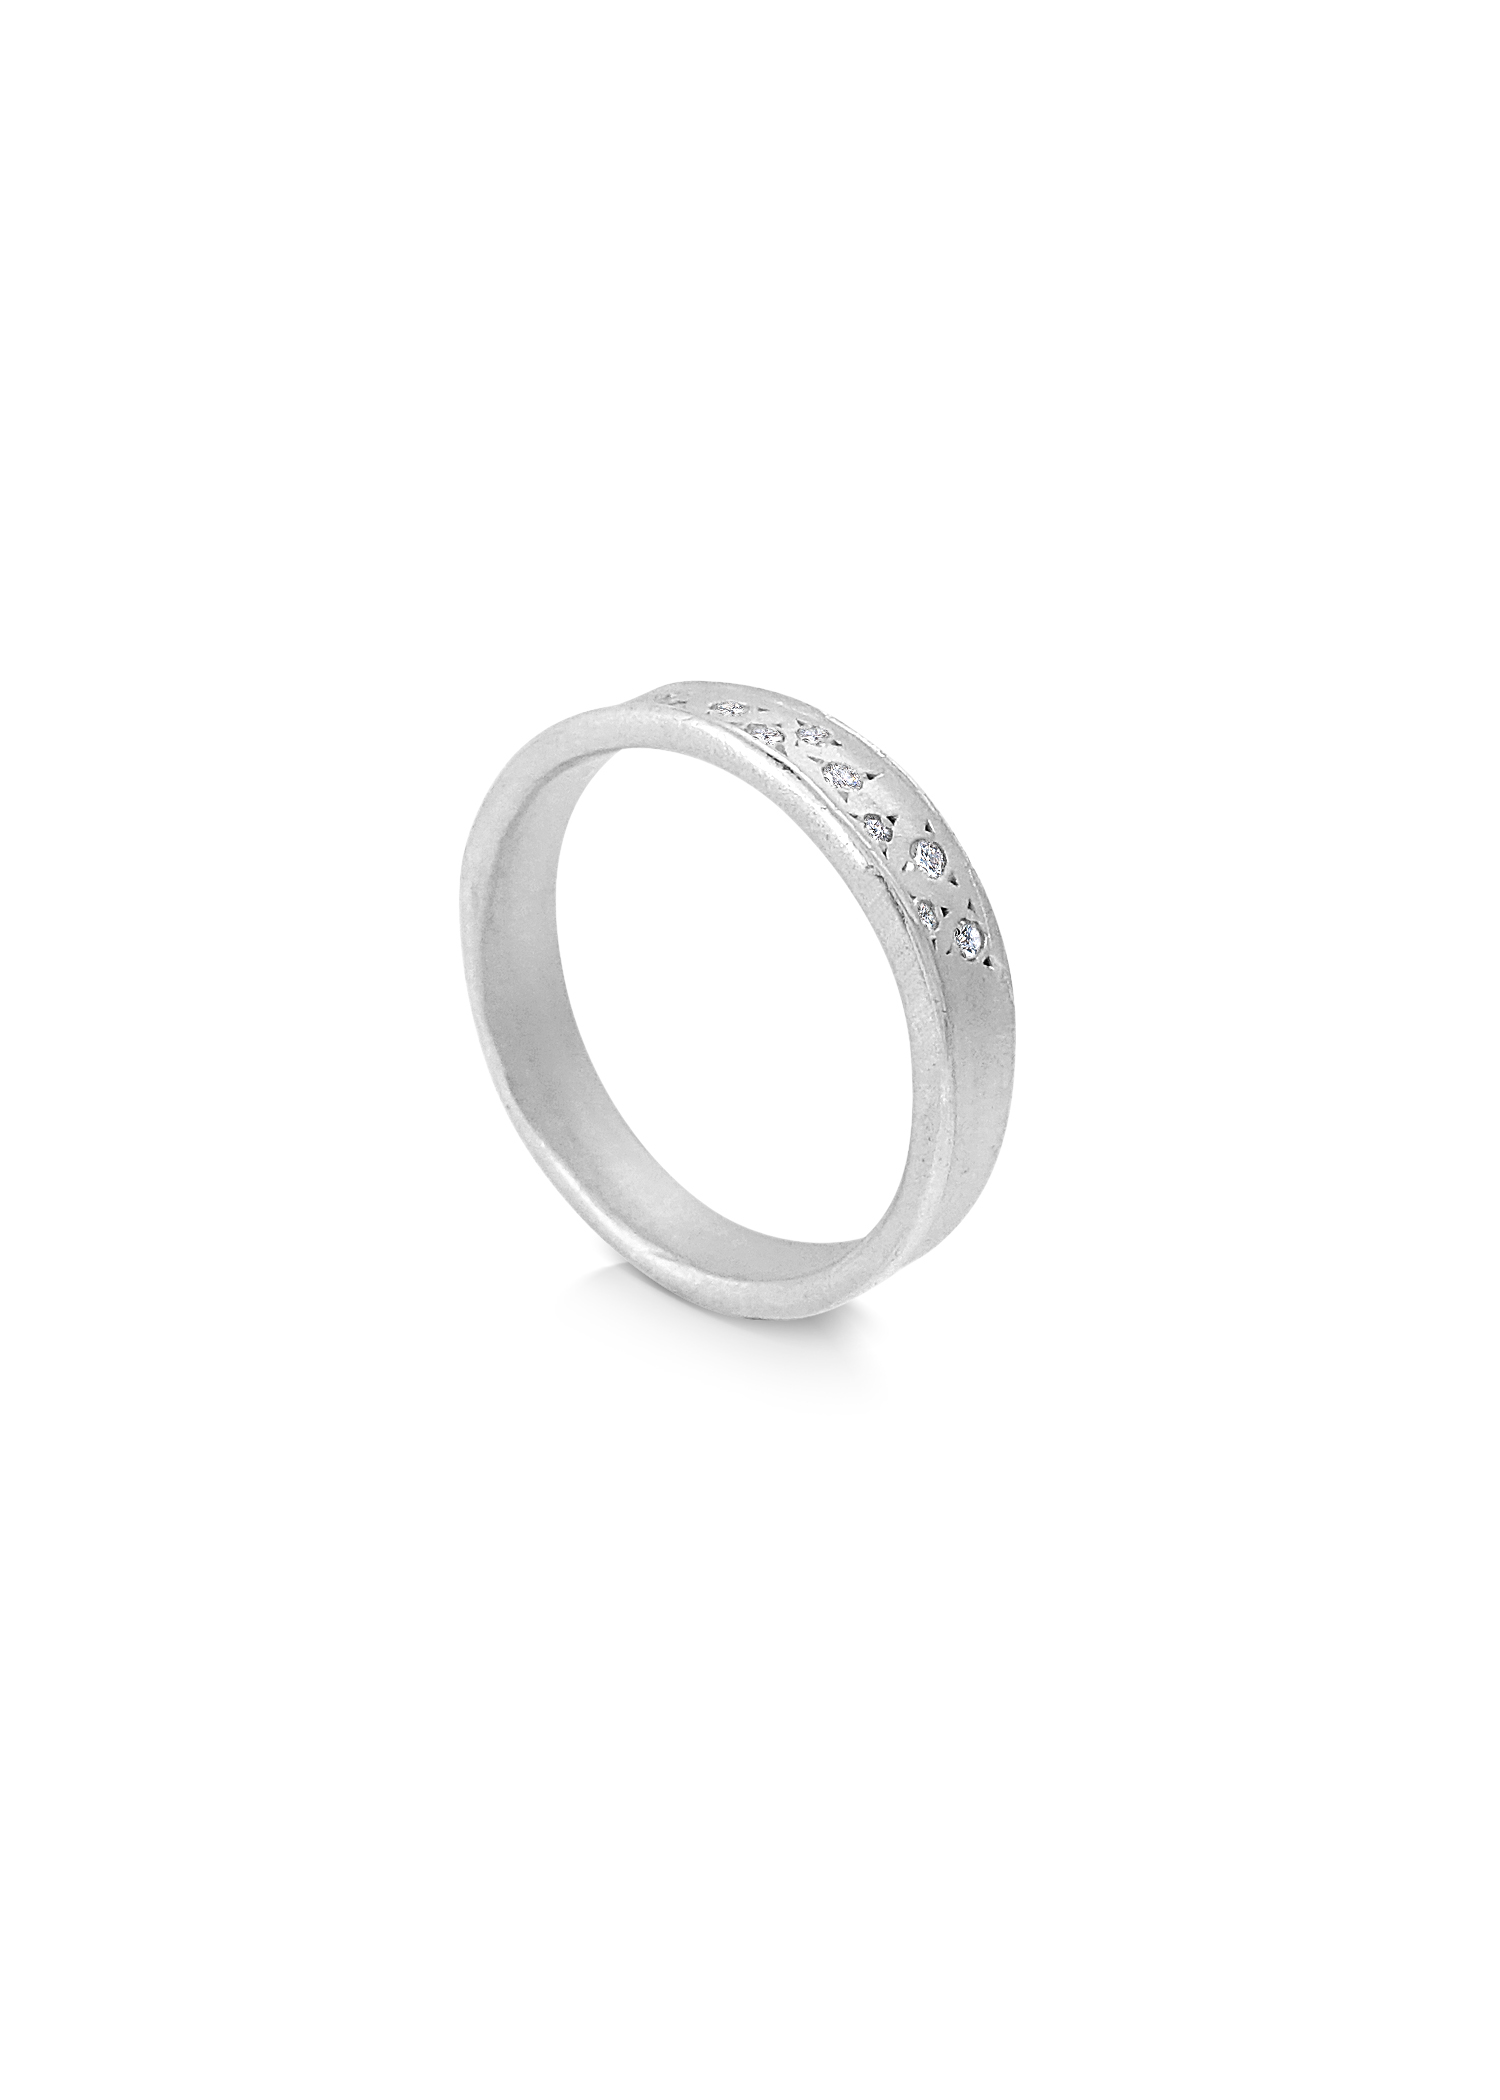 Misty Forest Dew Drops Ring